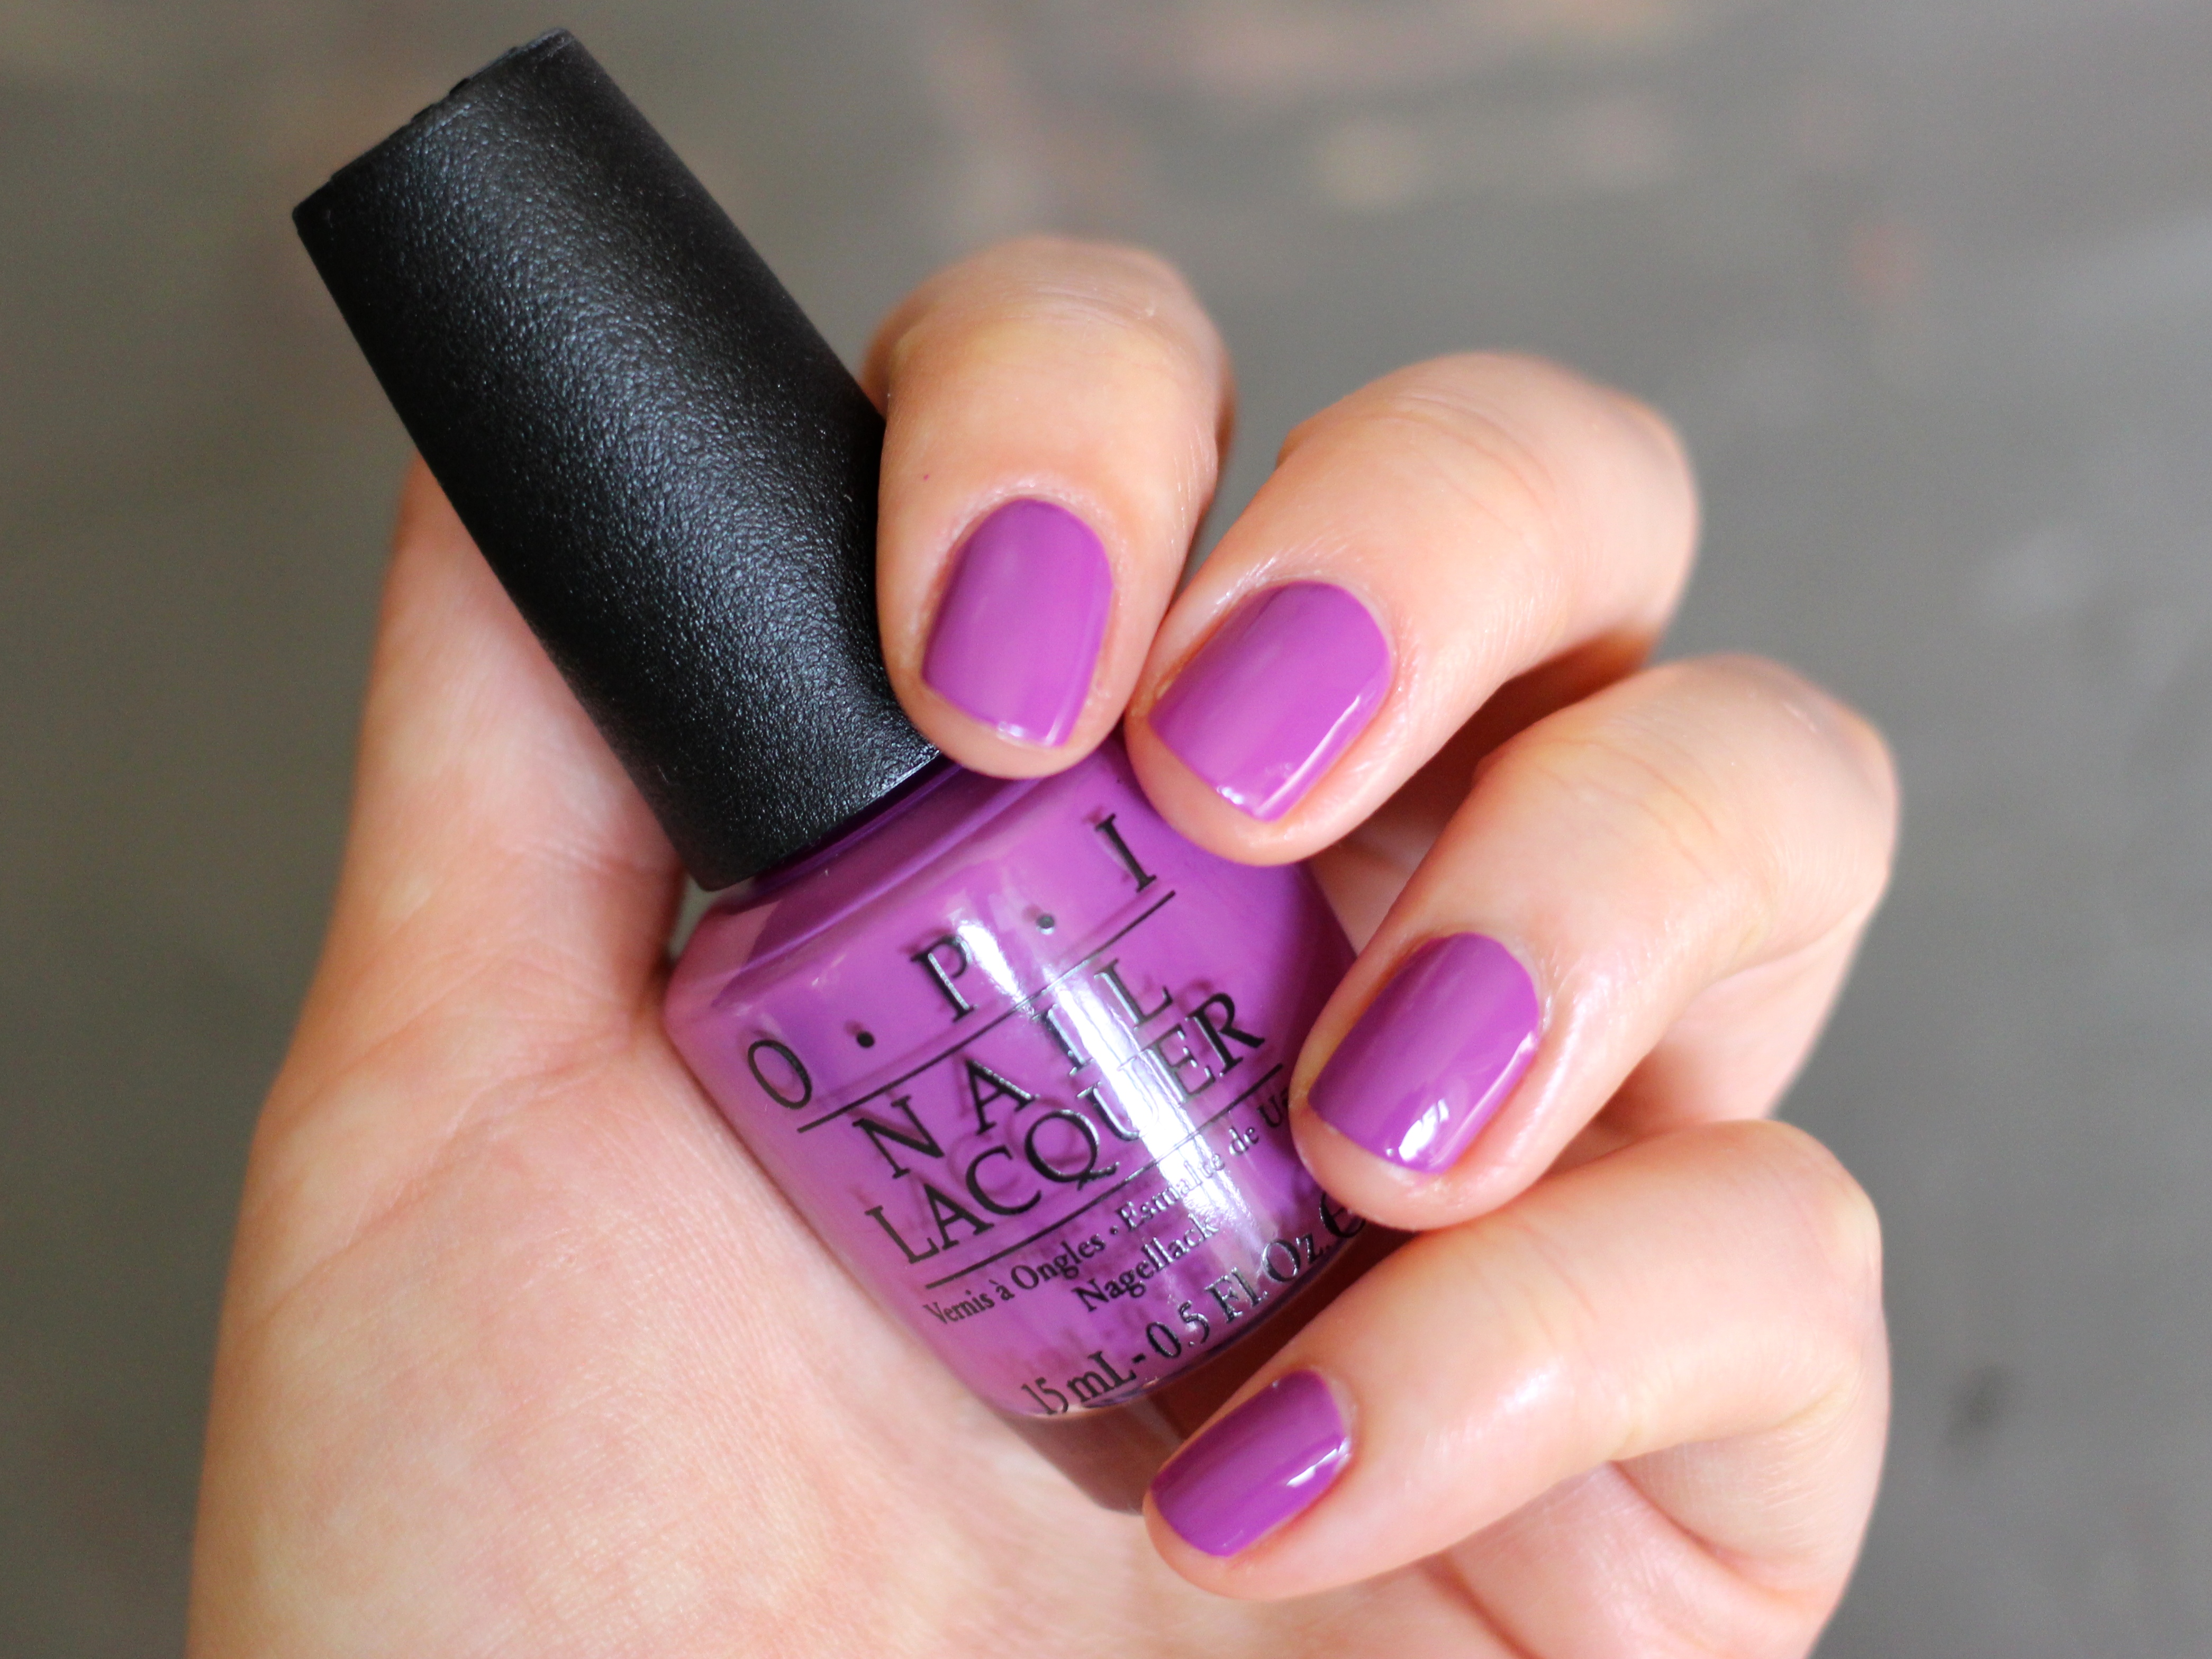 OPI I Bead for Manicures Swatch